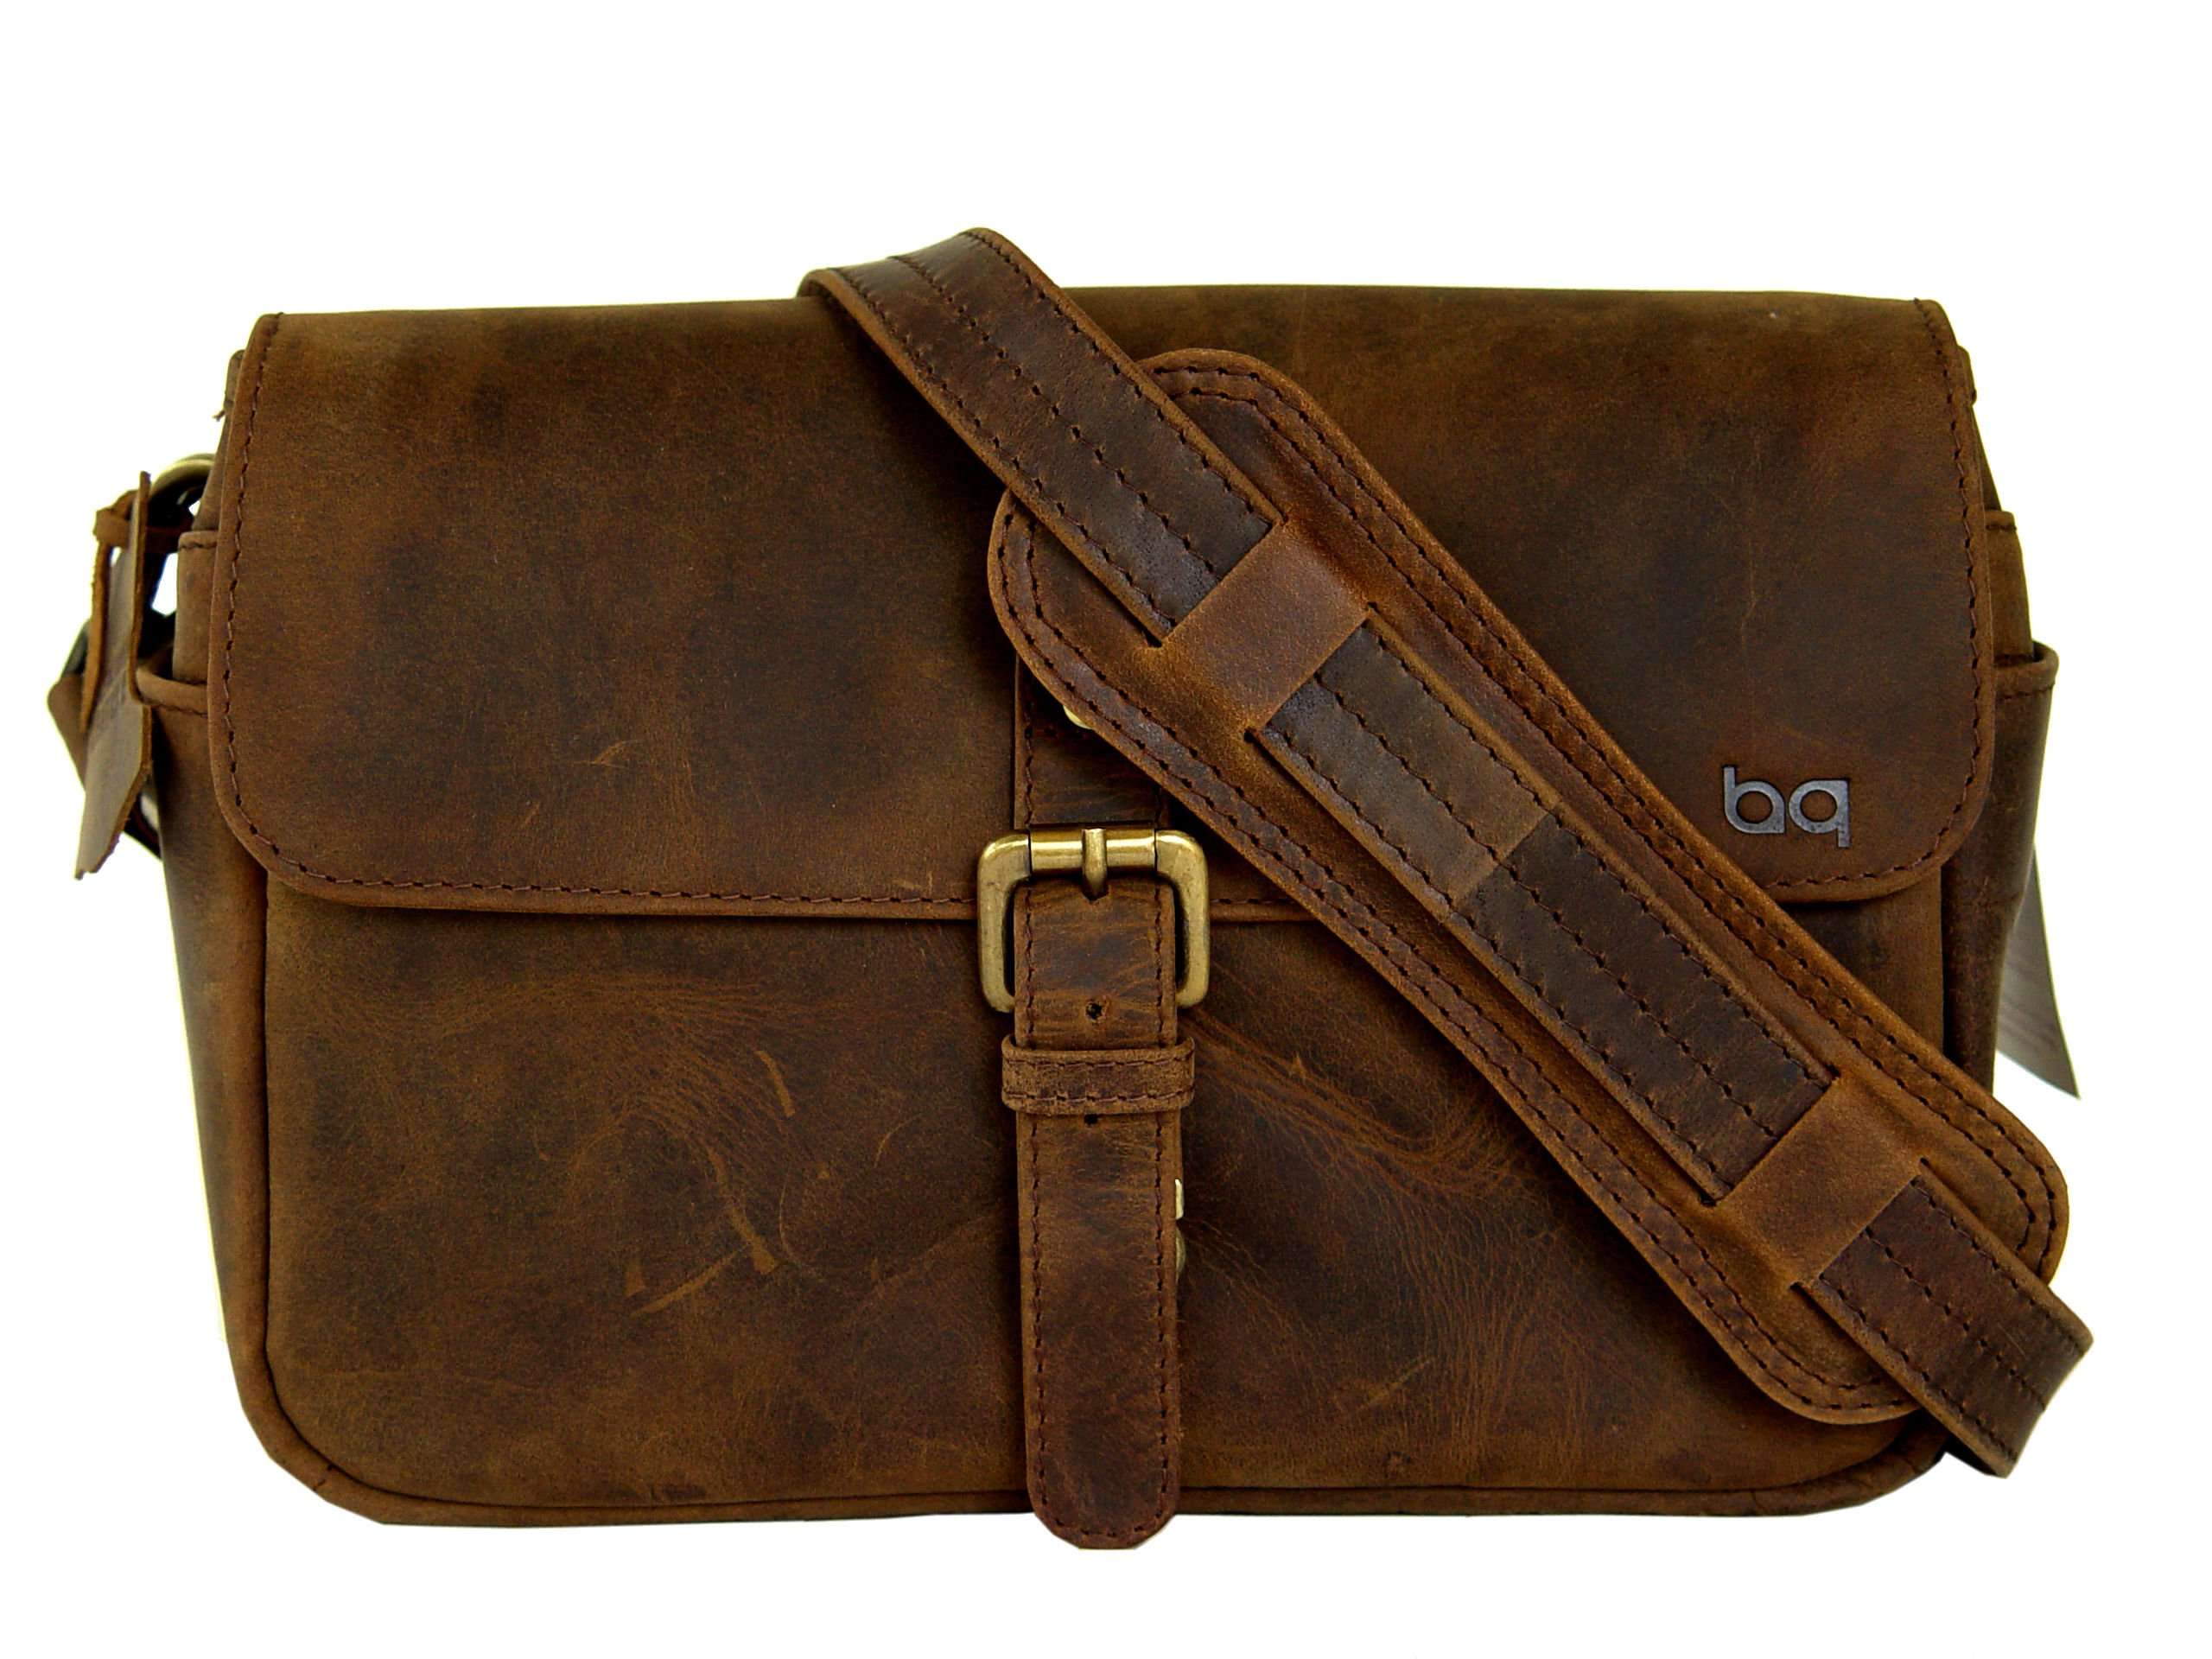 BASIC GEAR: Leather Camera Bag in Vintage Rustic Look For DSLR- Mirrorless Sony, Nikon, Canon, Pentax camera. by Basic Gear